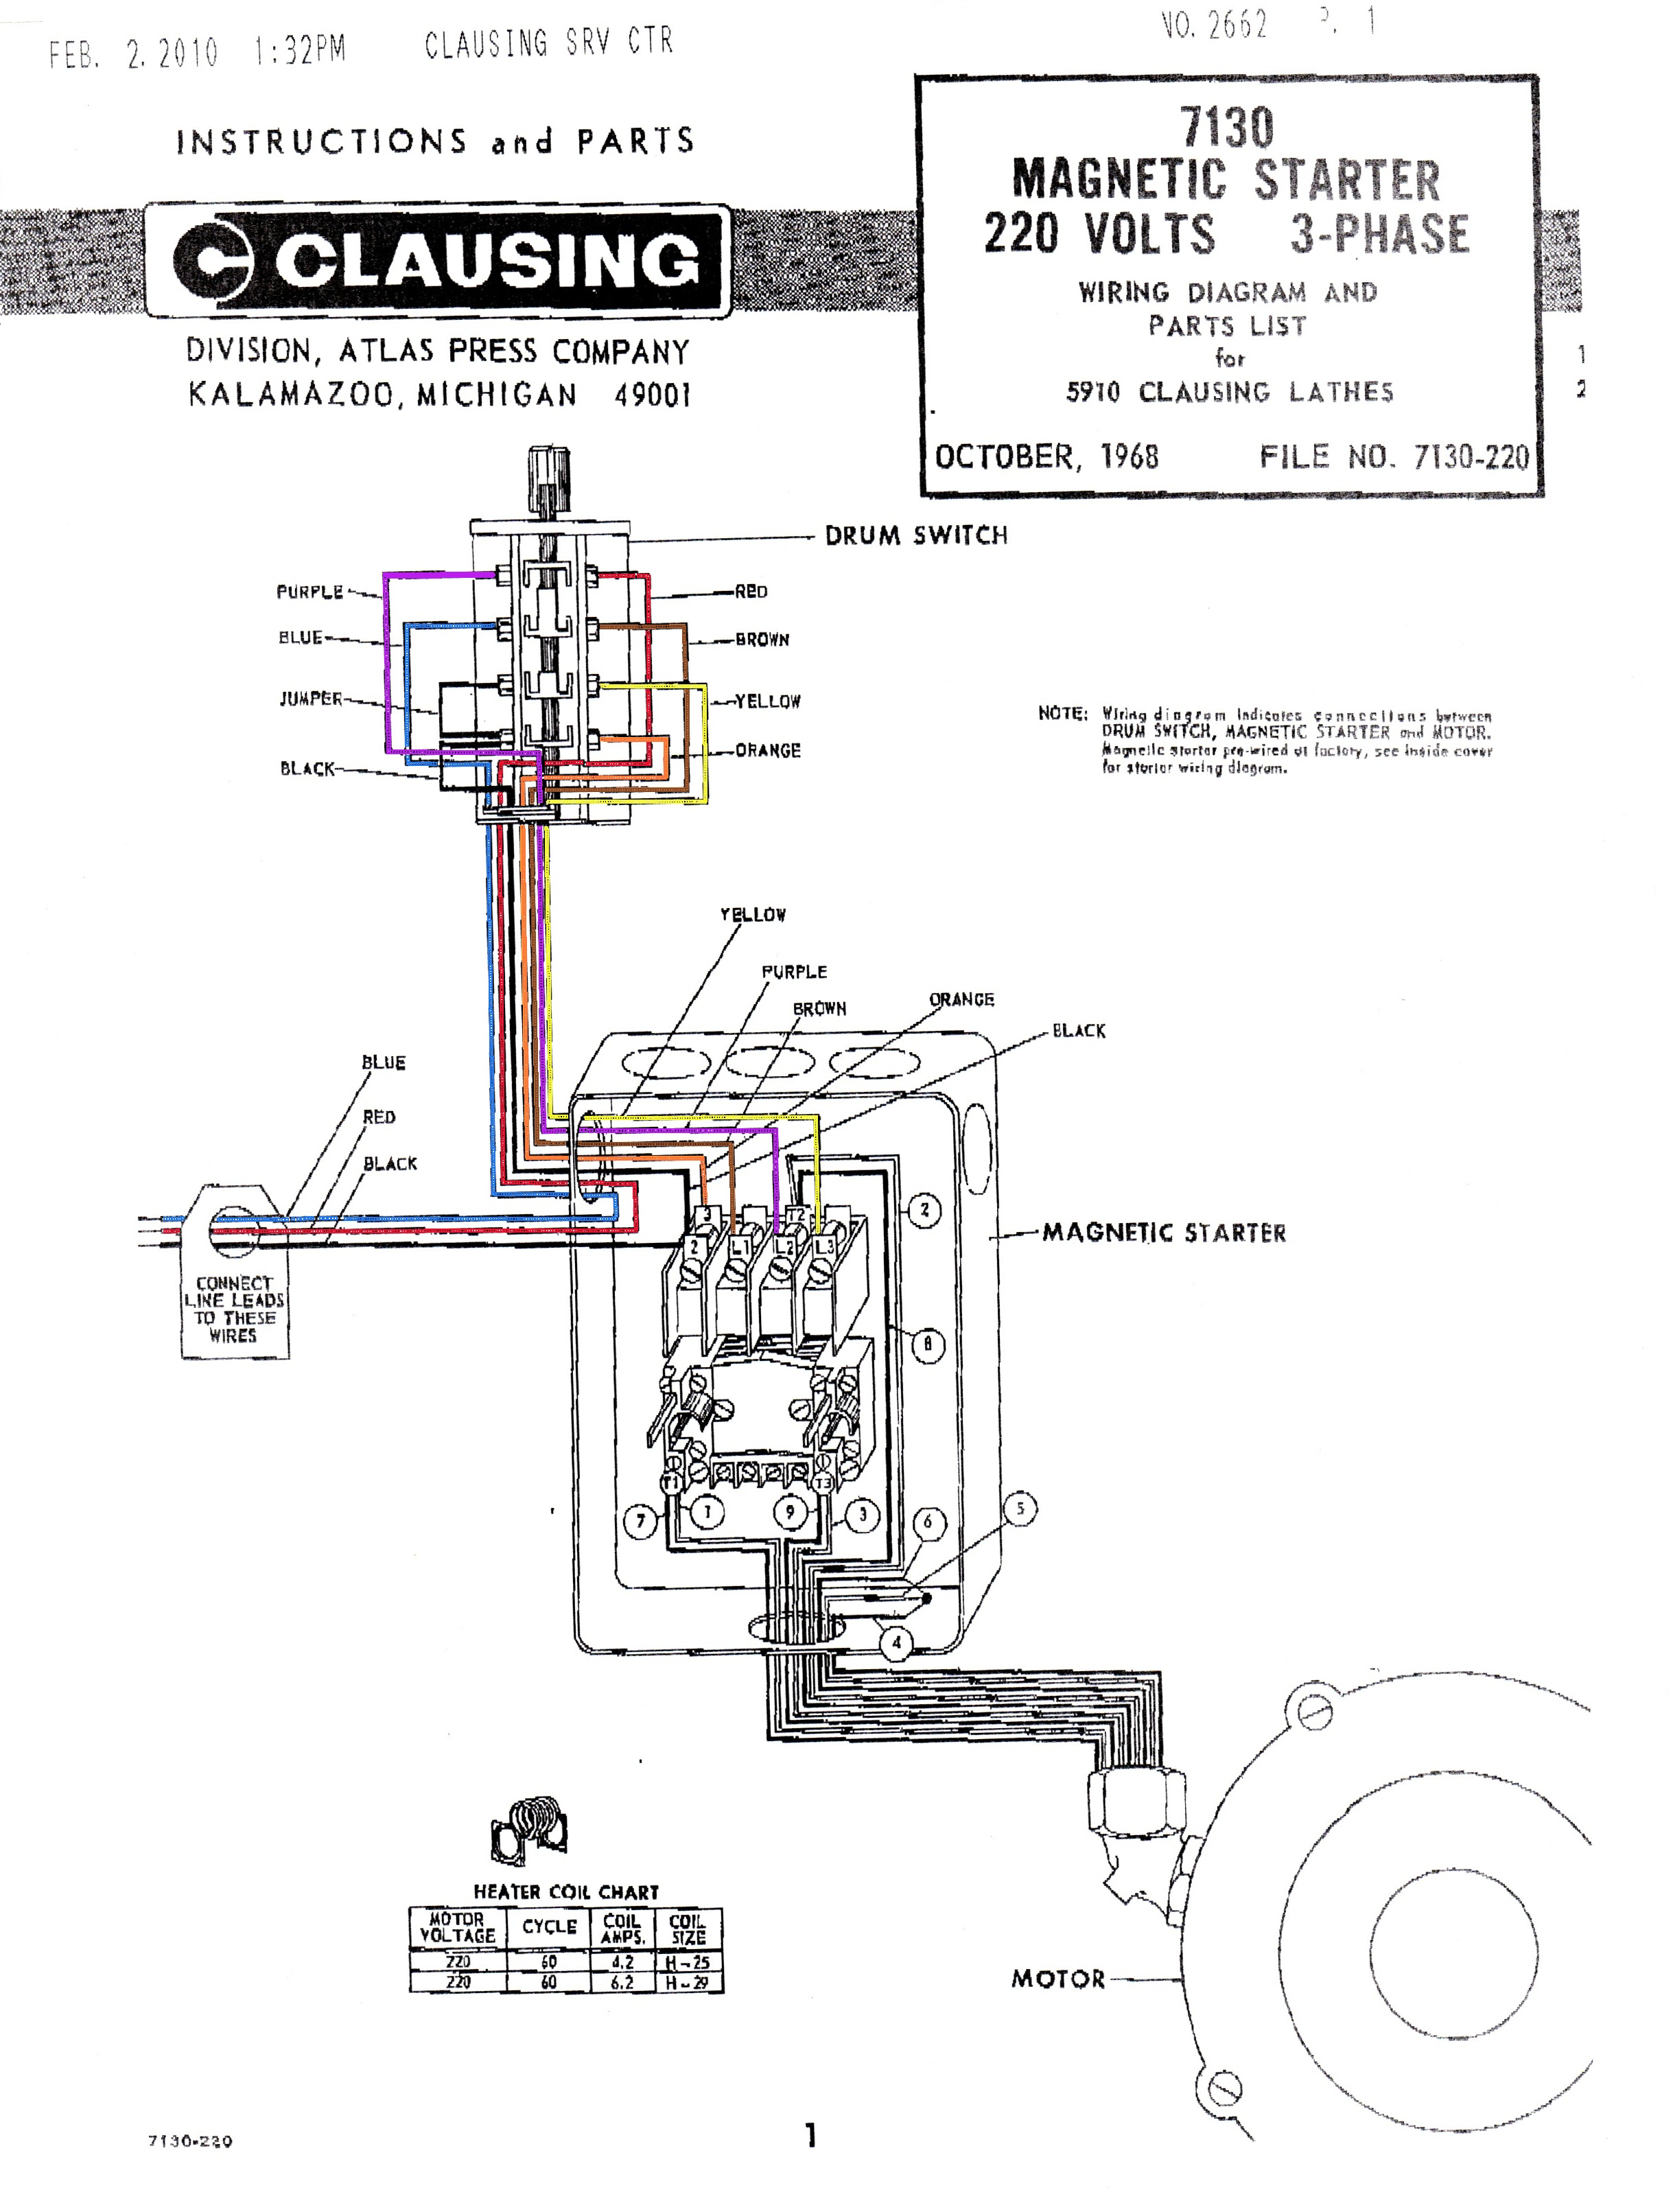 Incredible Electrical Starter Wiring Diagram Basic Electronics Wiring Diagram Wiring 101 Capemaxxcnl